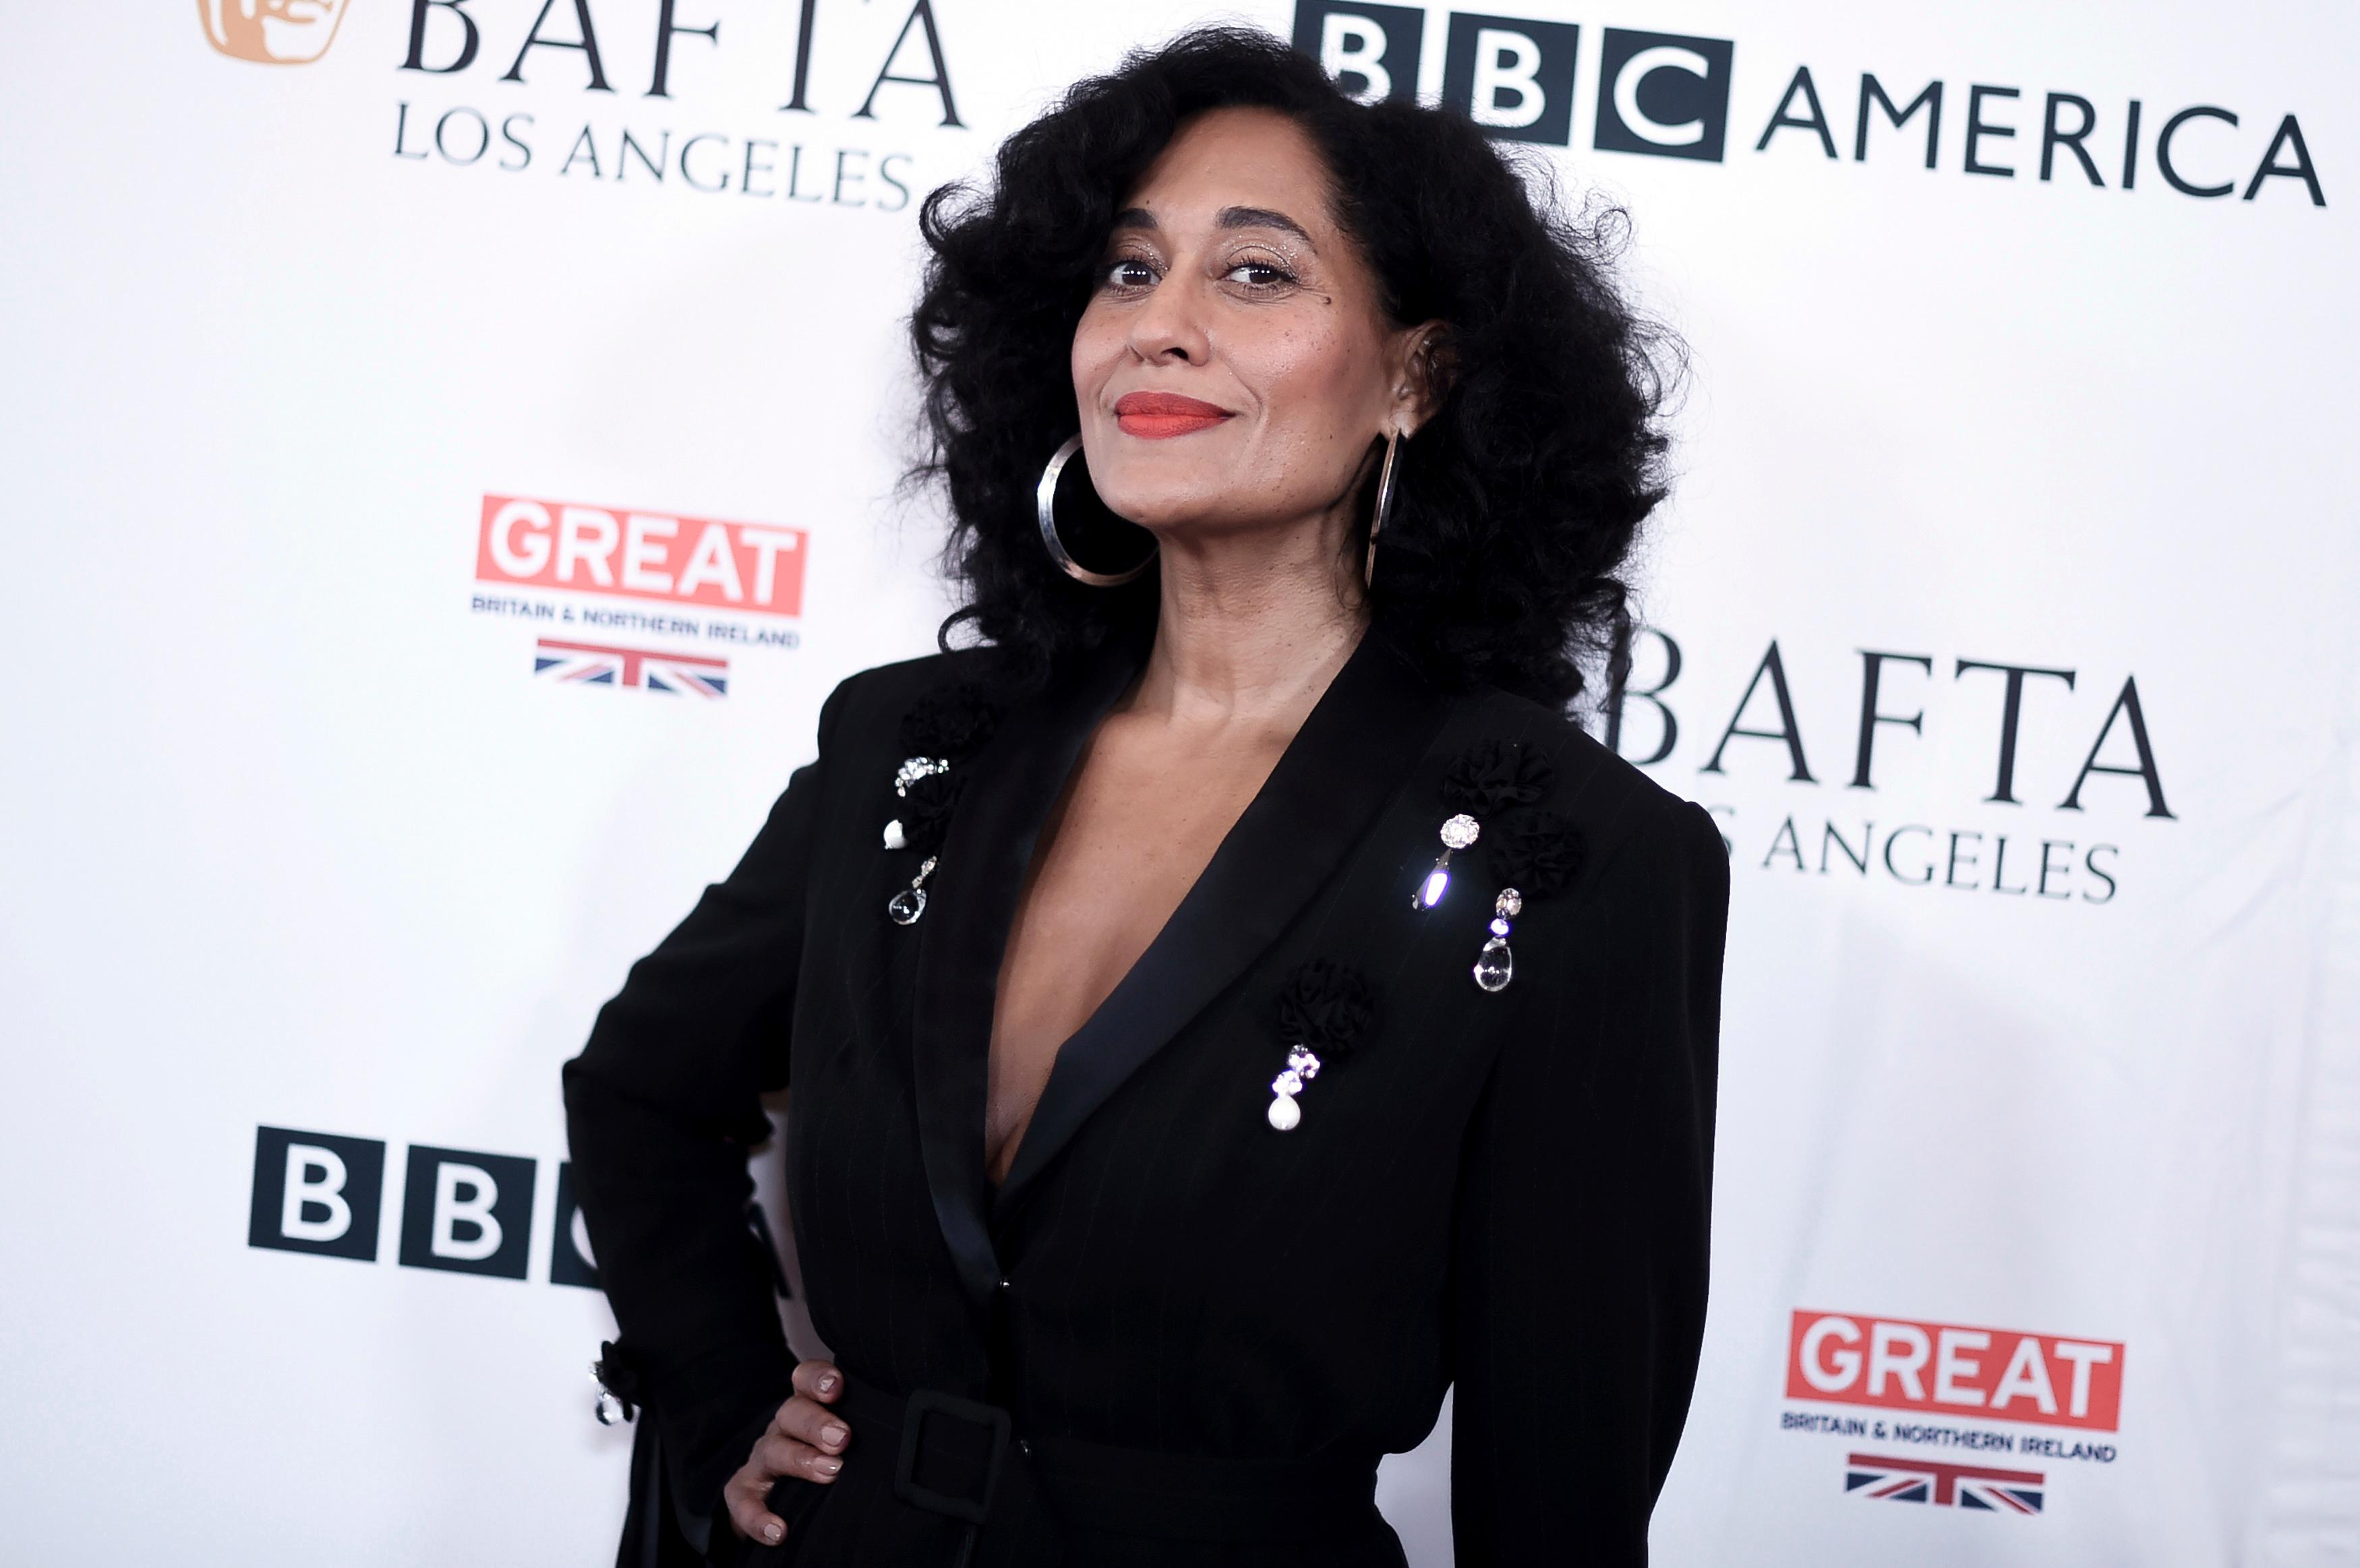 FILE - In this Sept. 16, 2017, file photo, Tracee Ellis Ross attends the BAFTA Los Angeles TV Tea Party at the Beverly Hilton Hotel in Beverly Hills, Calif. (Photo by Richard Shotwell/Invision/AP, File)